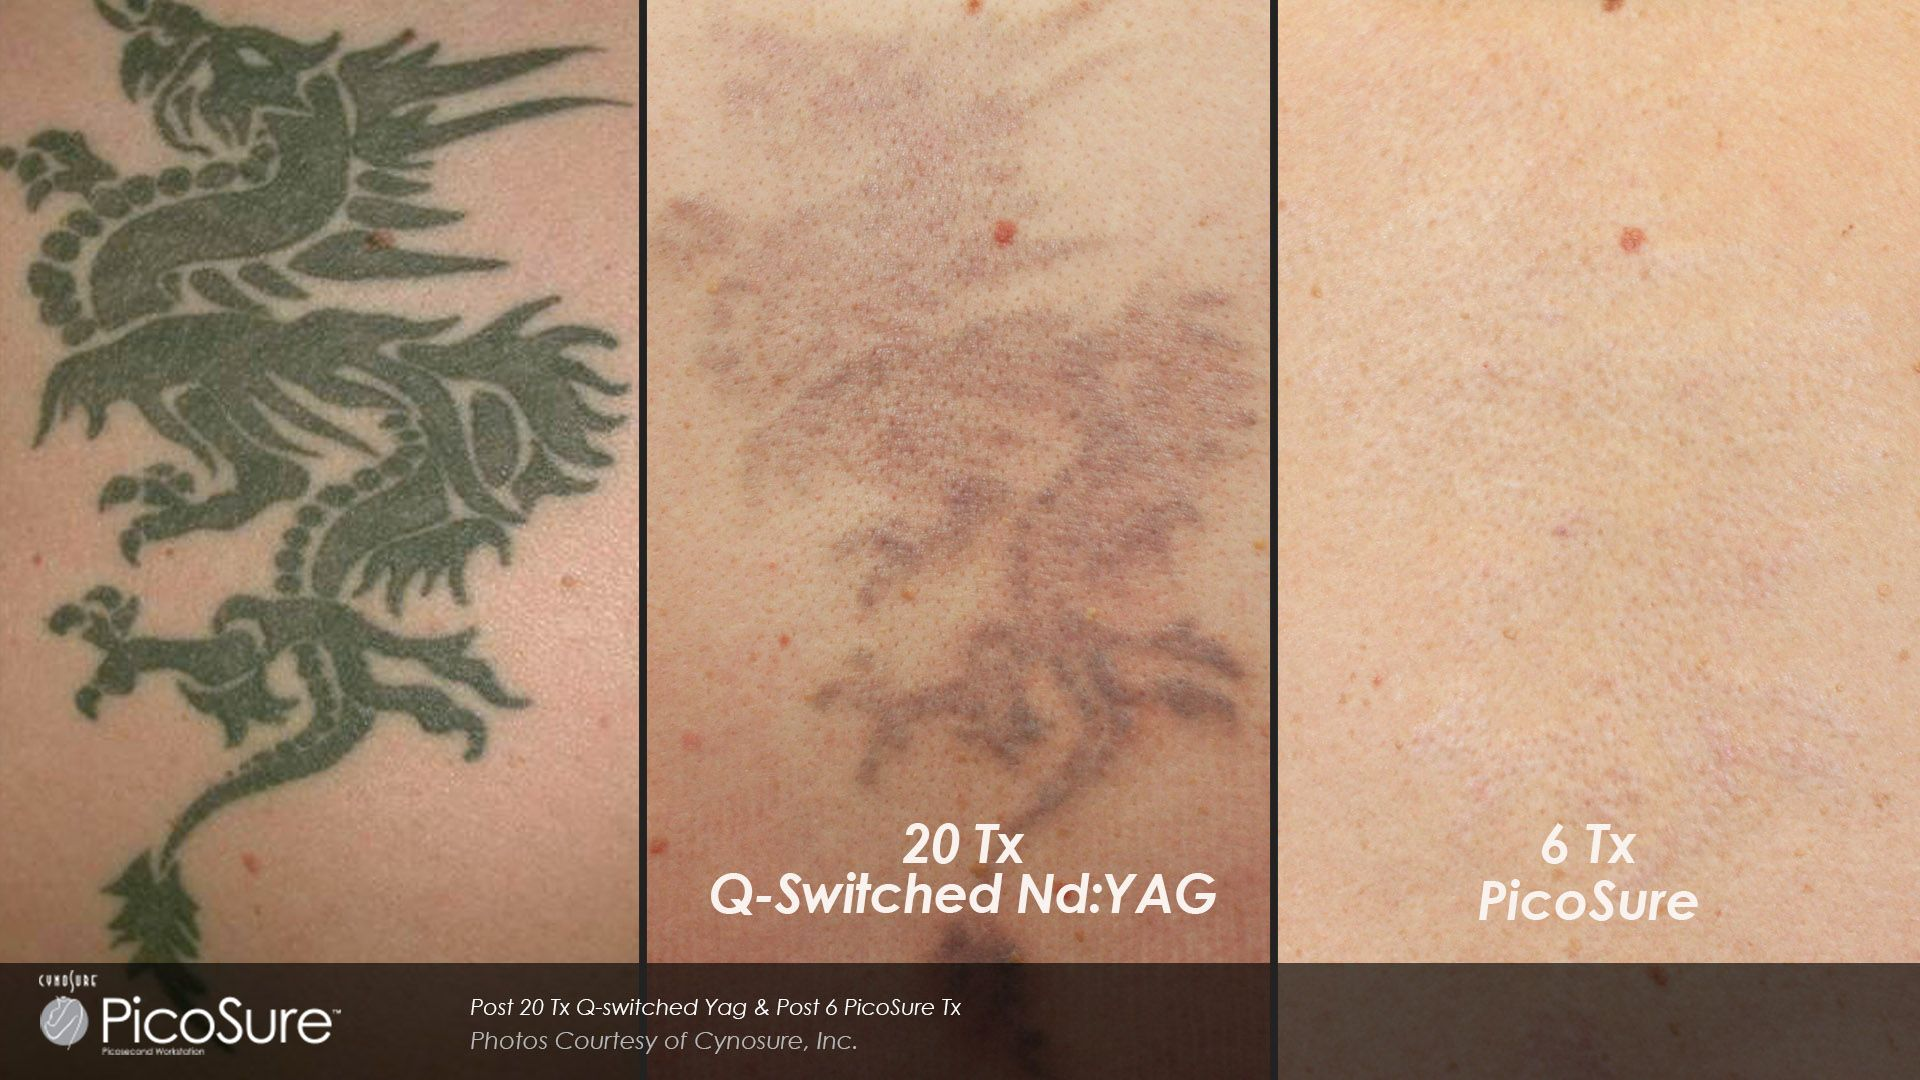 Results Of New Picosecond Laser Technology Now Used In Tattoo